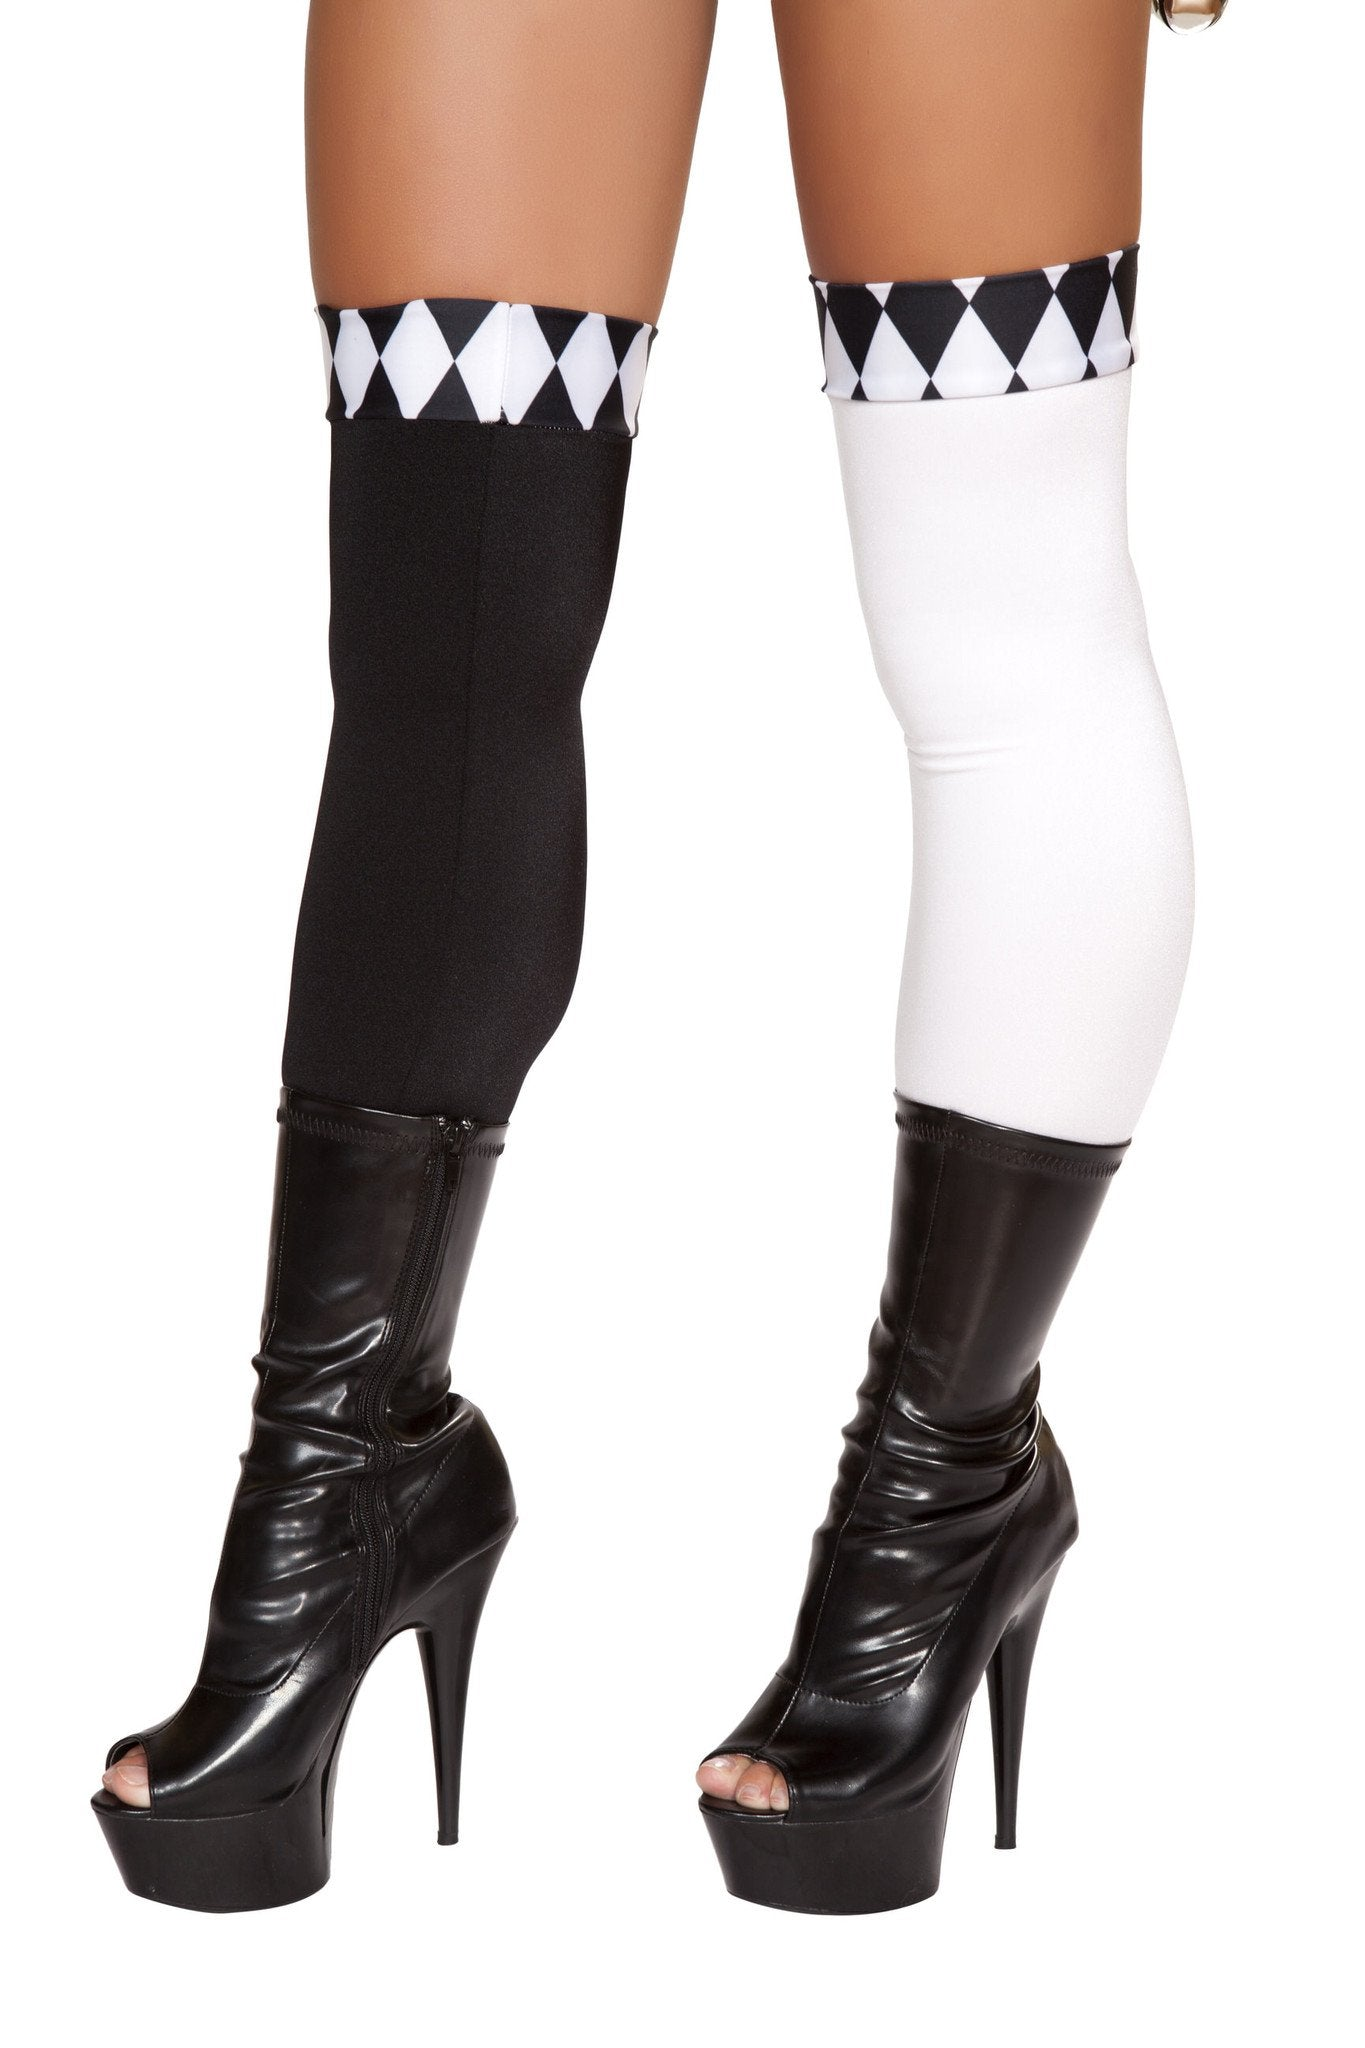 Buy ST4673 - Wicked Jester Stockings from Rave Fix for $15.00 with Same Day Shipping Designed by Roma Costume ST4673-AS-O/S